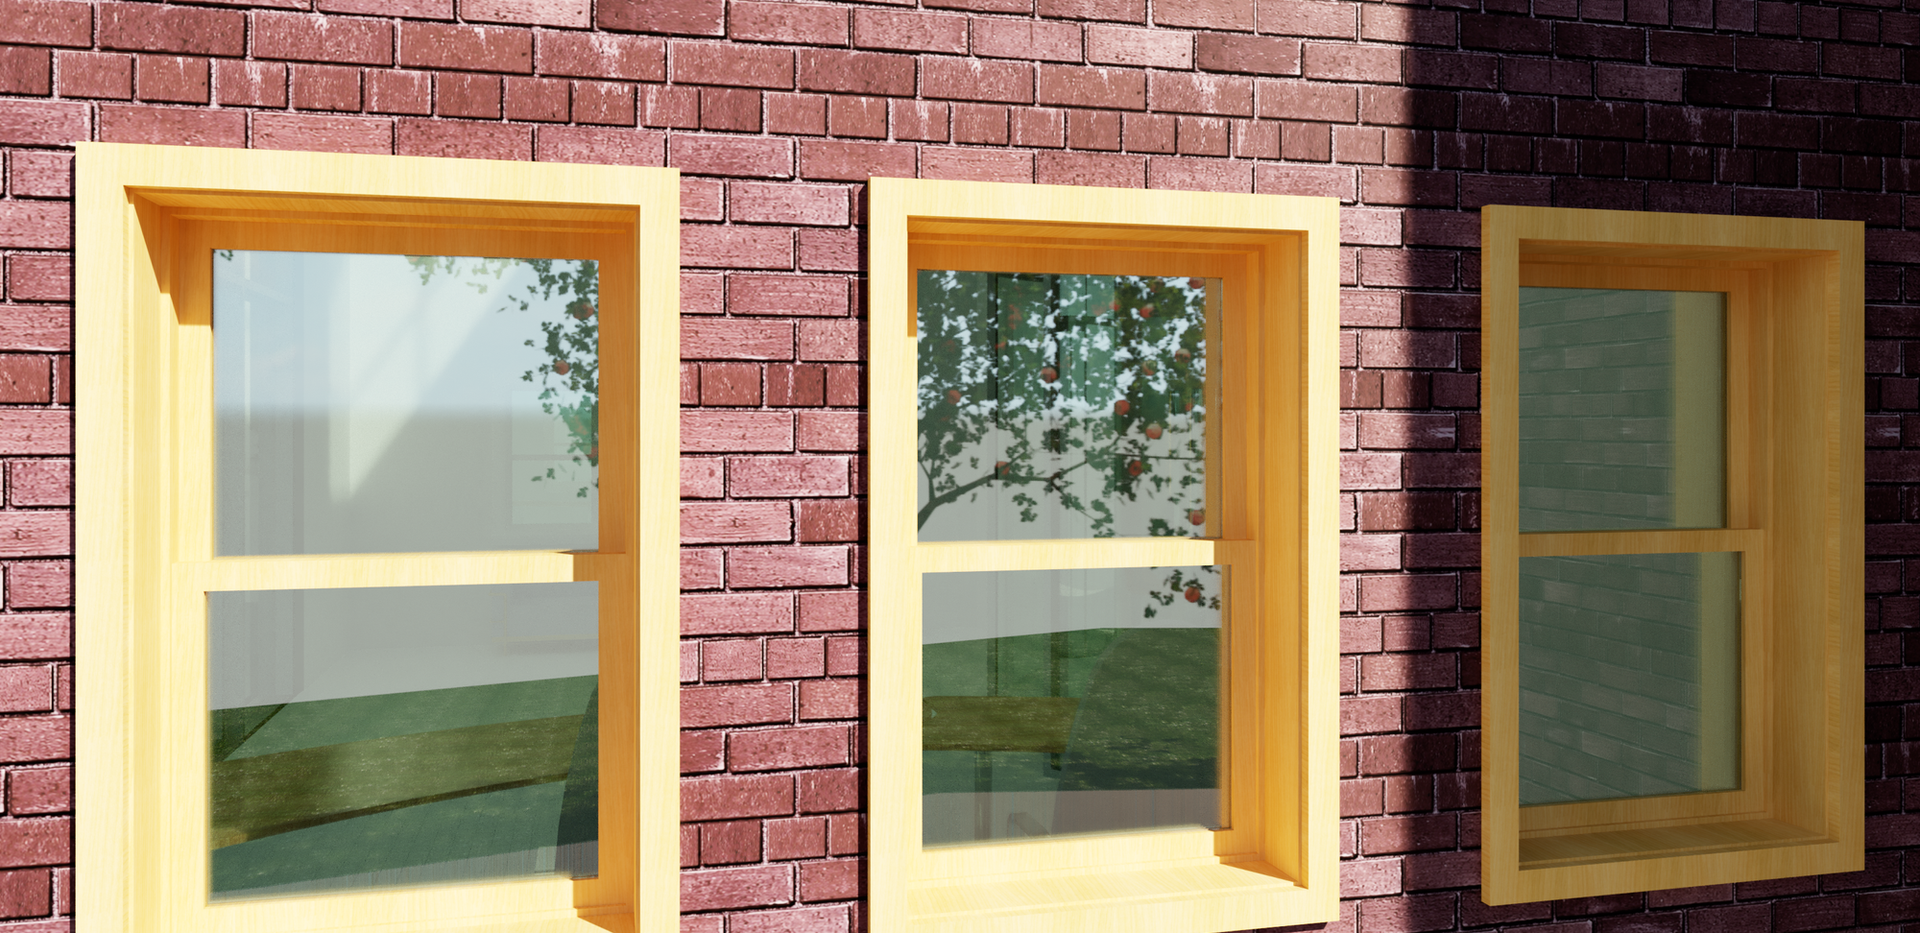 Window System Design Concept and 3D Modeling